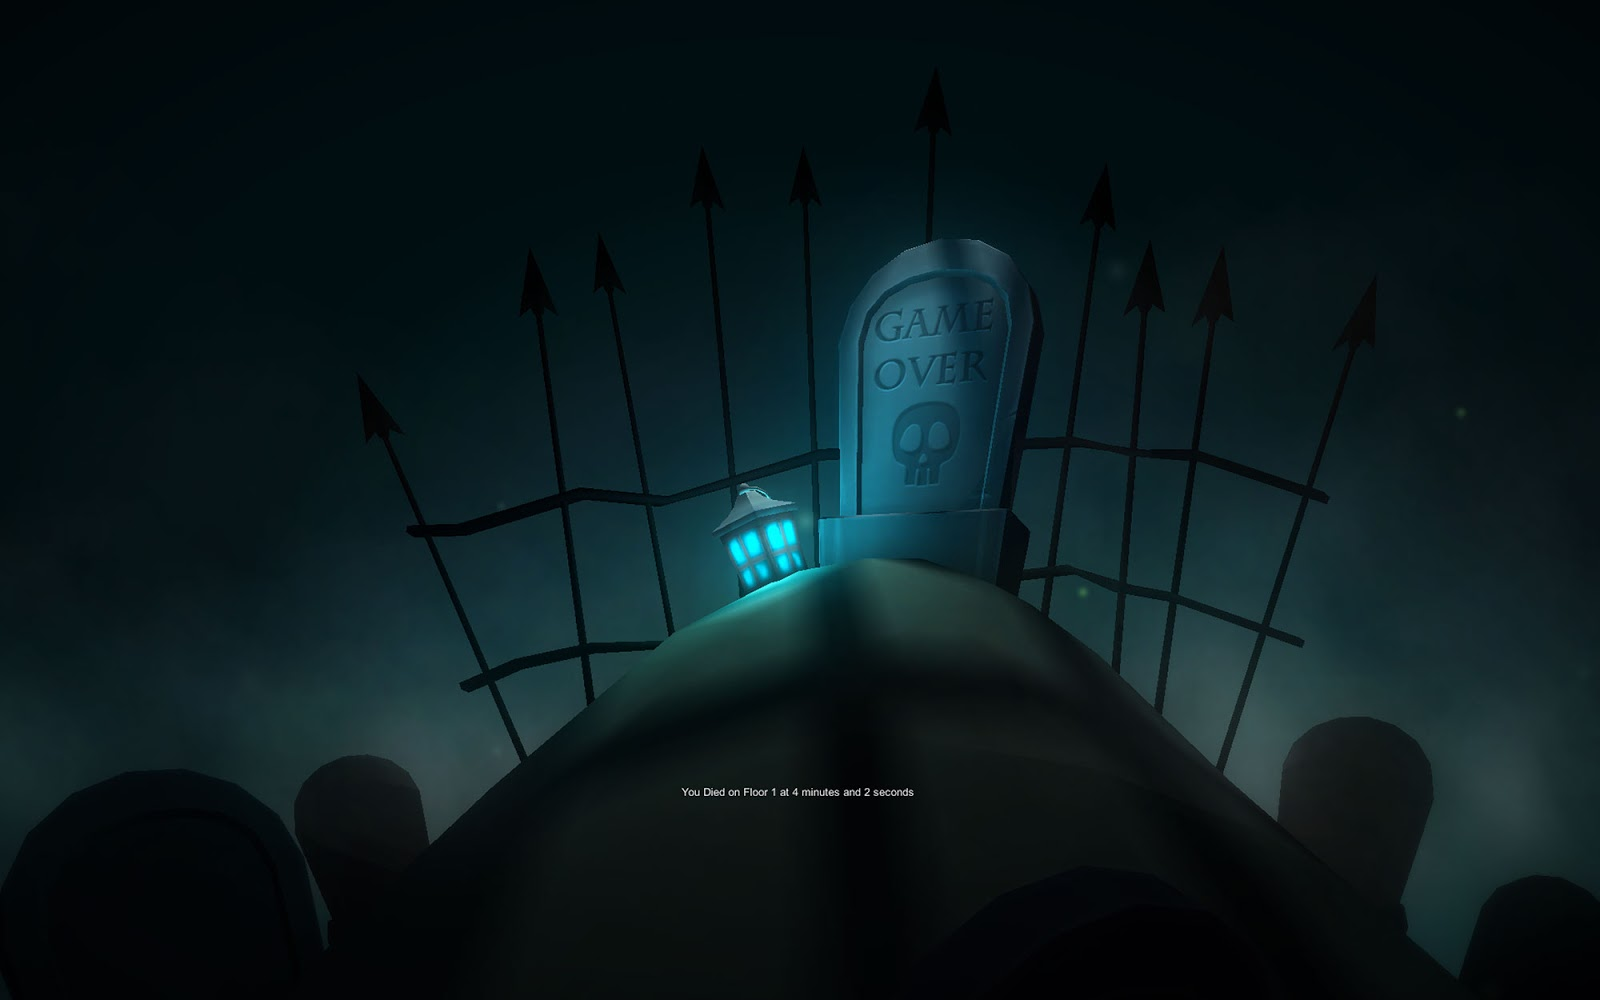 game over screen from this is dungeon